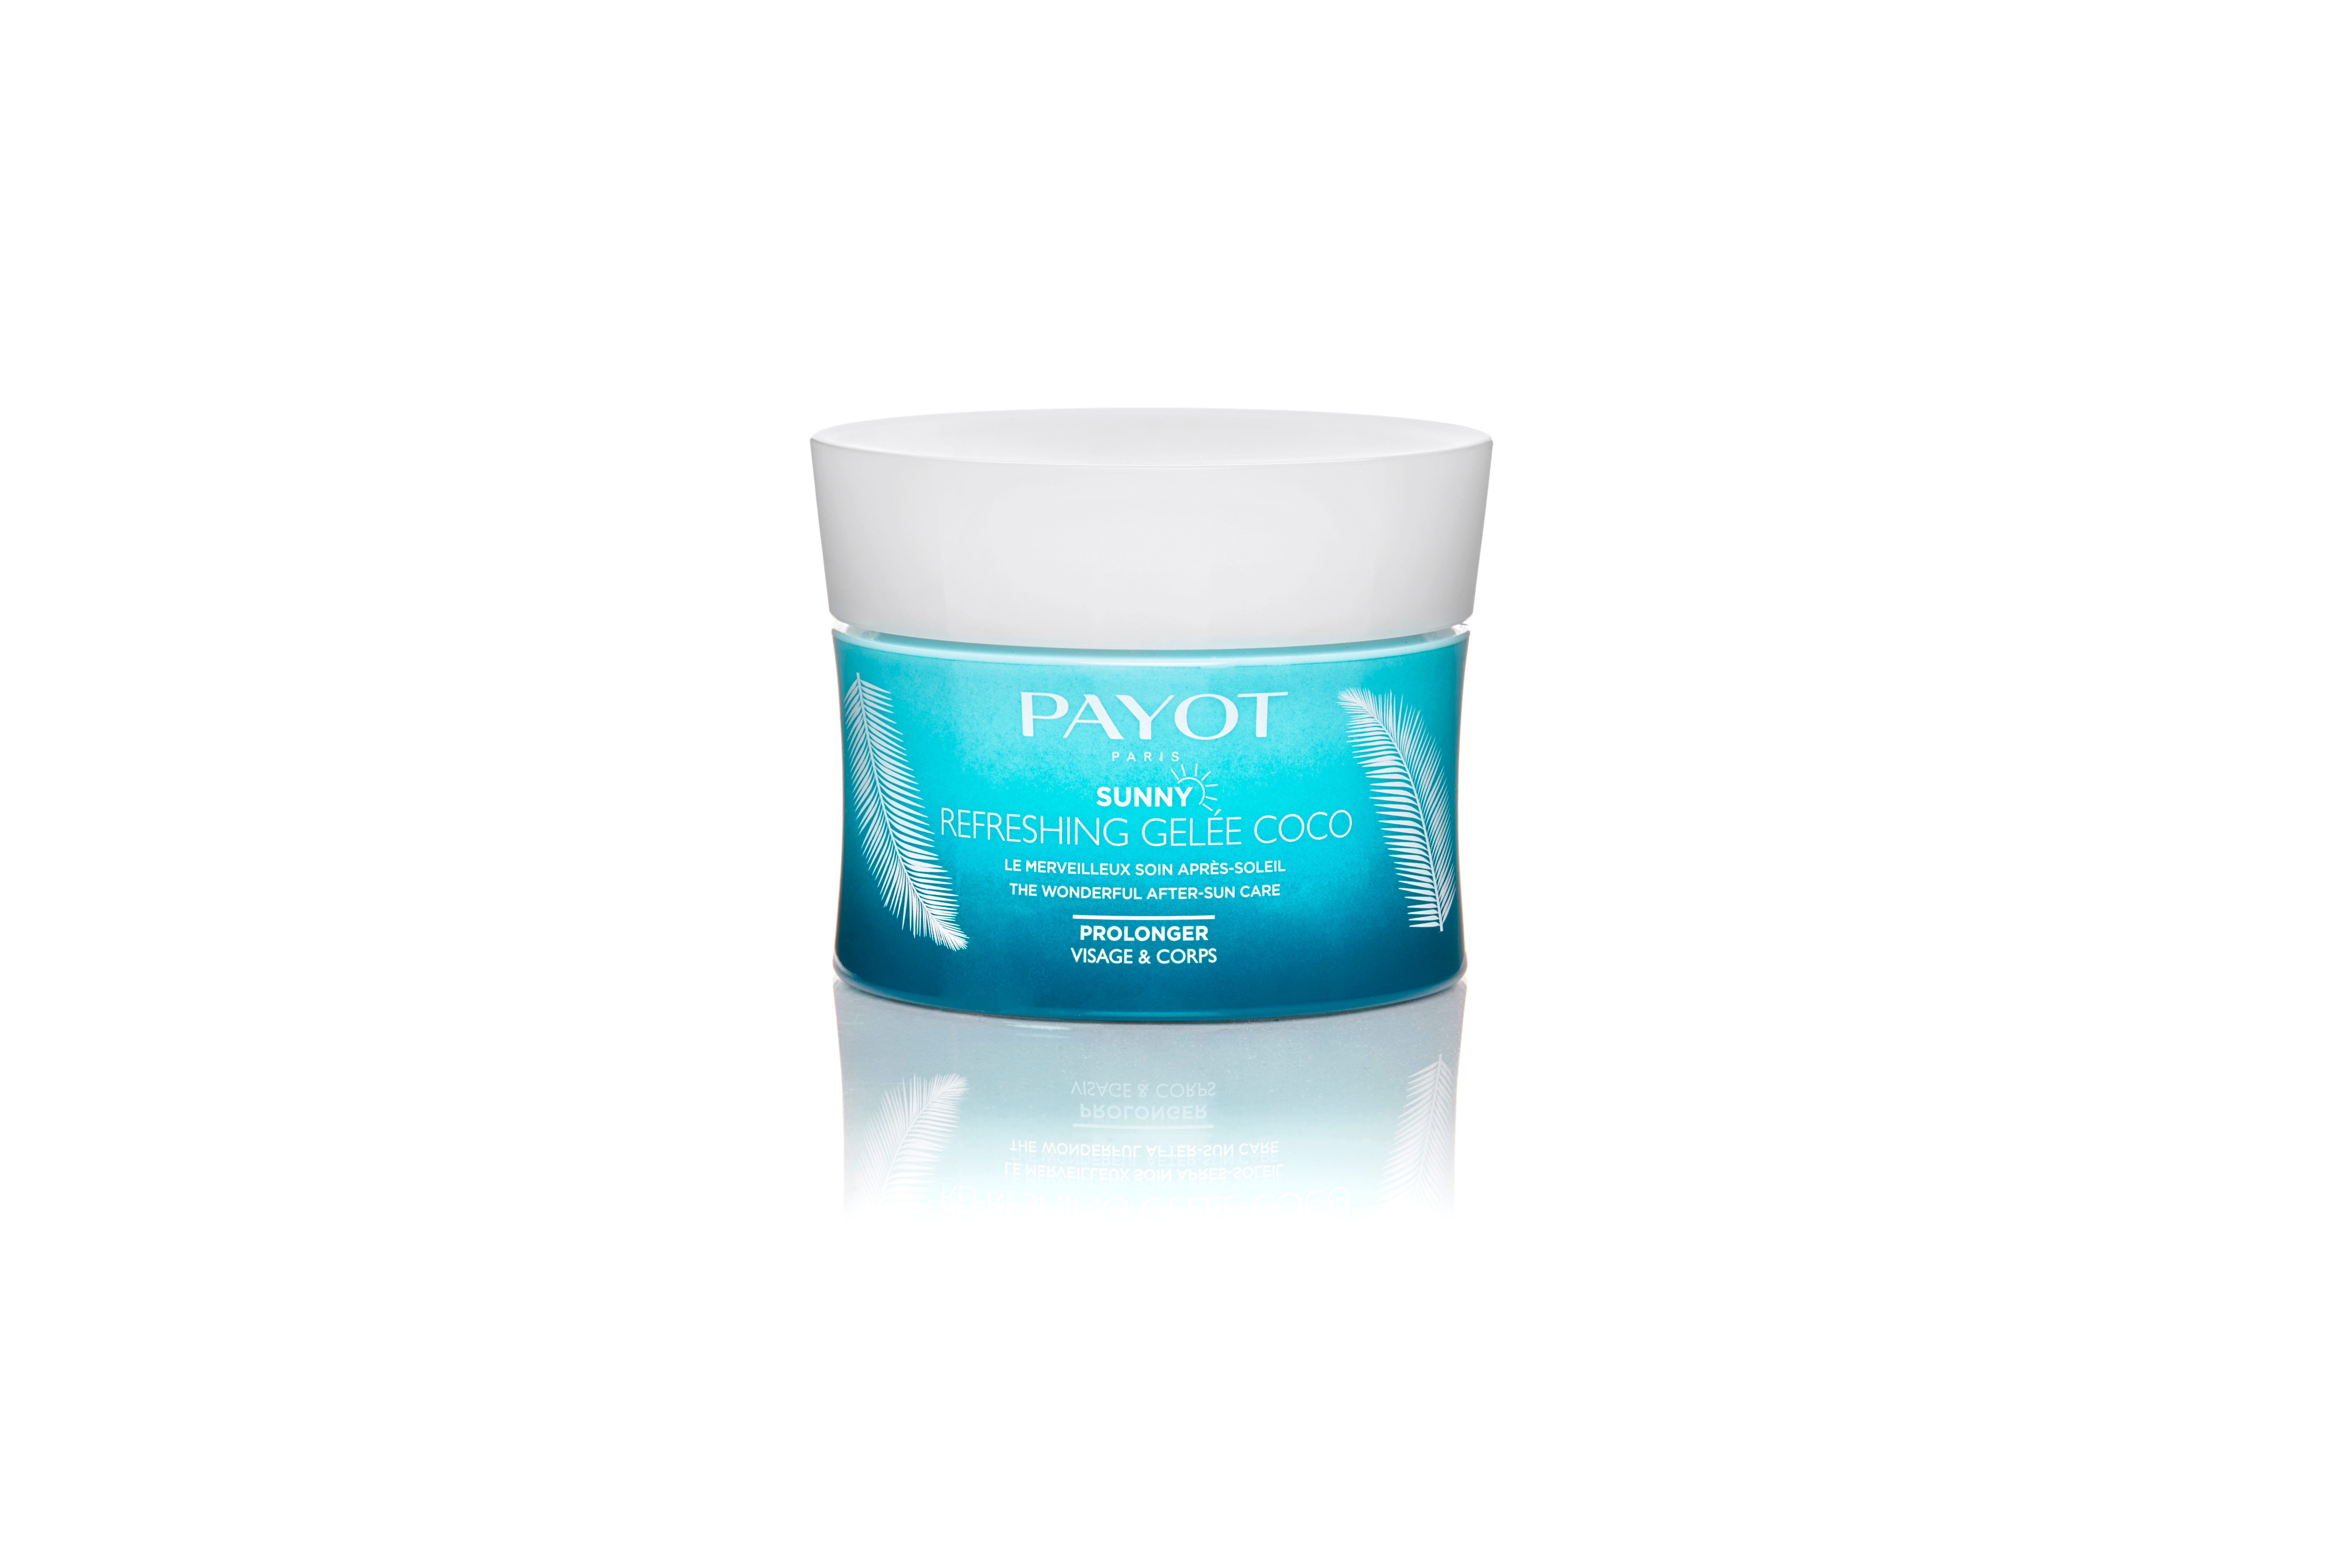 PAYOT Sunny Refreshing Gelée Coco aftersun